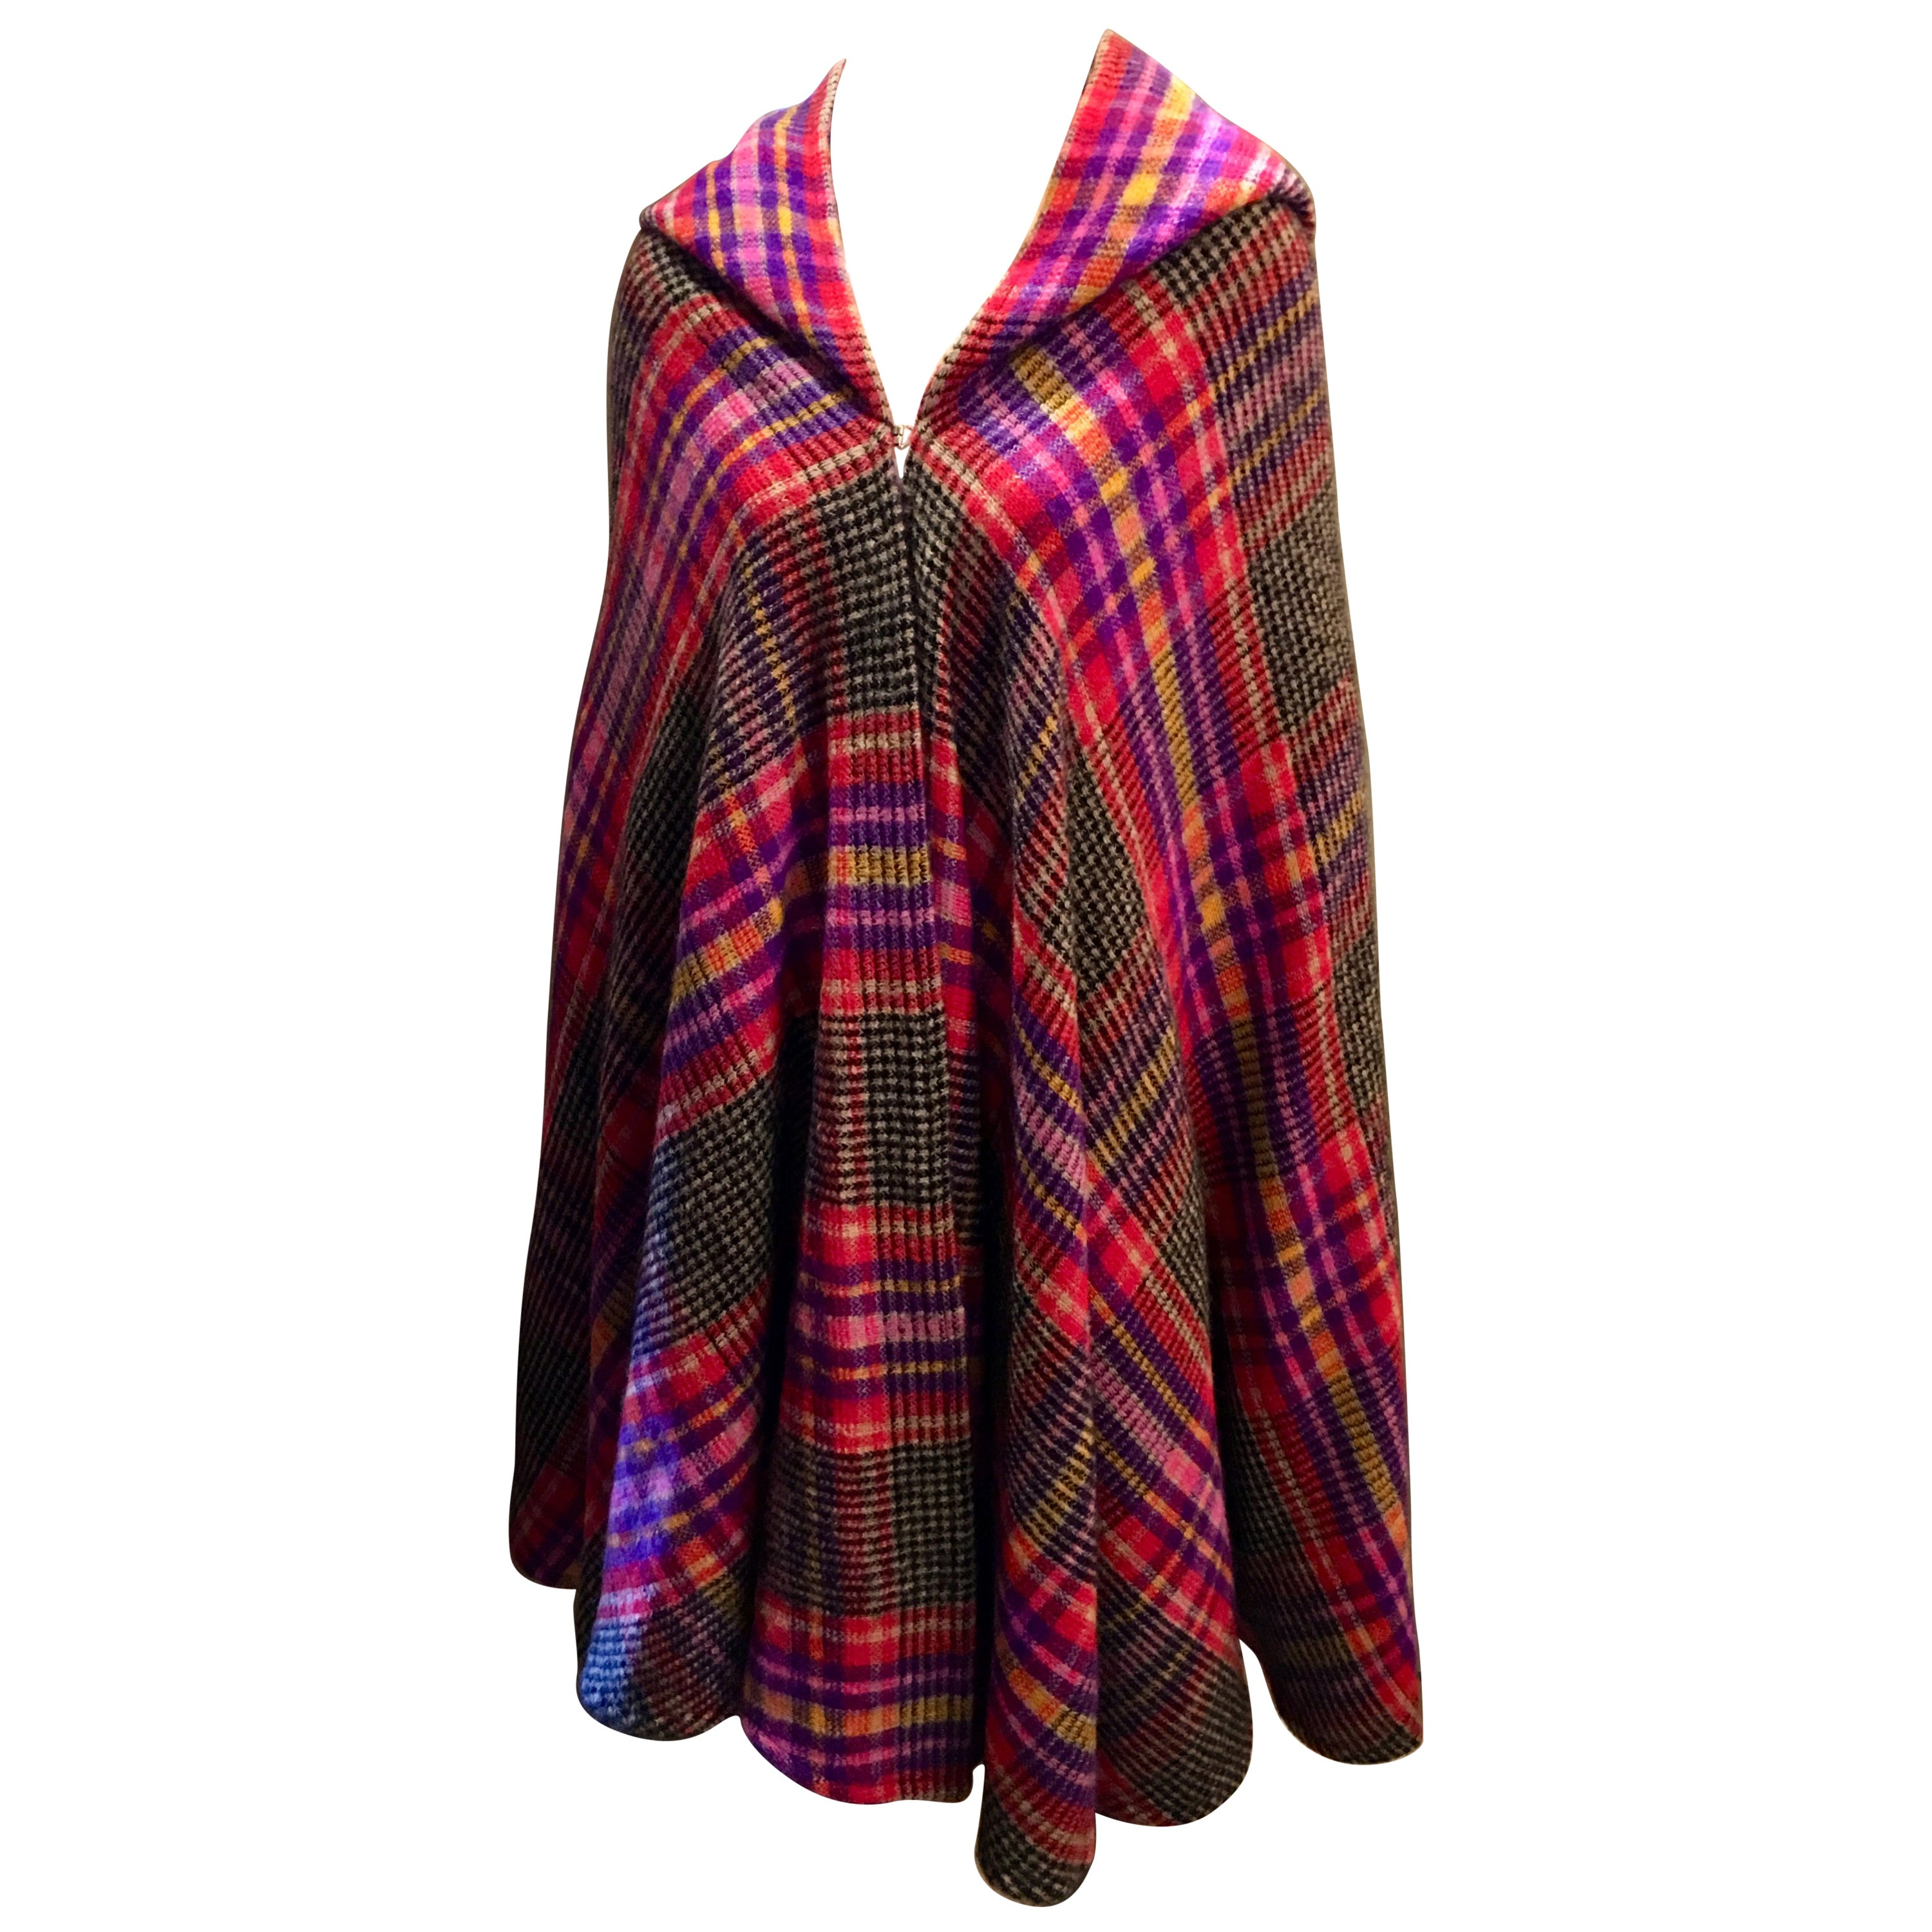 Couture Missoni Plaid Knitted Hooded Wool Cape Cloak with Orange Label